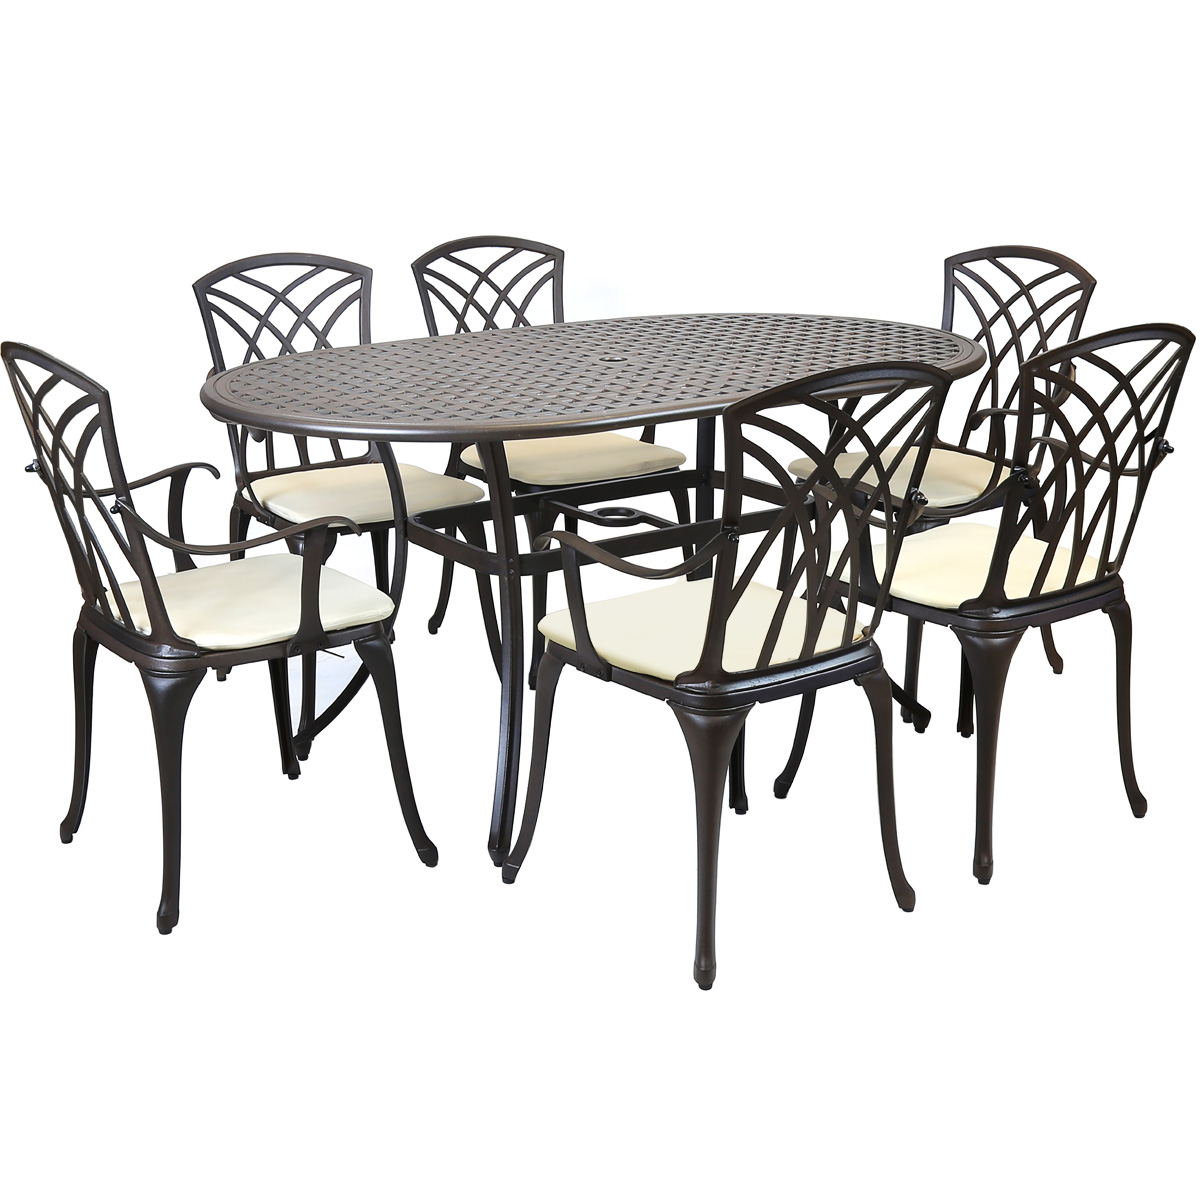 Metal cast aluminium 7 piece garden furniture table patio for Metal garden table and chairs